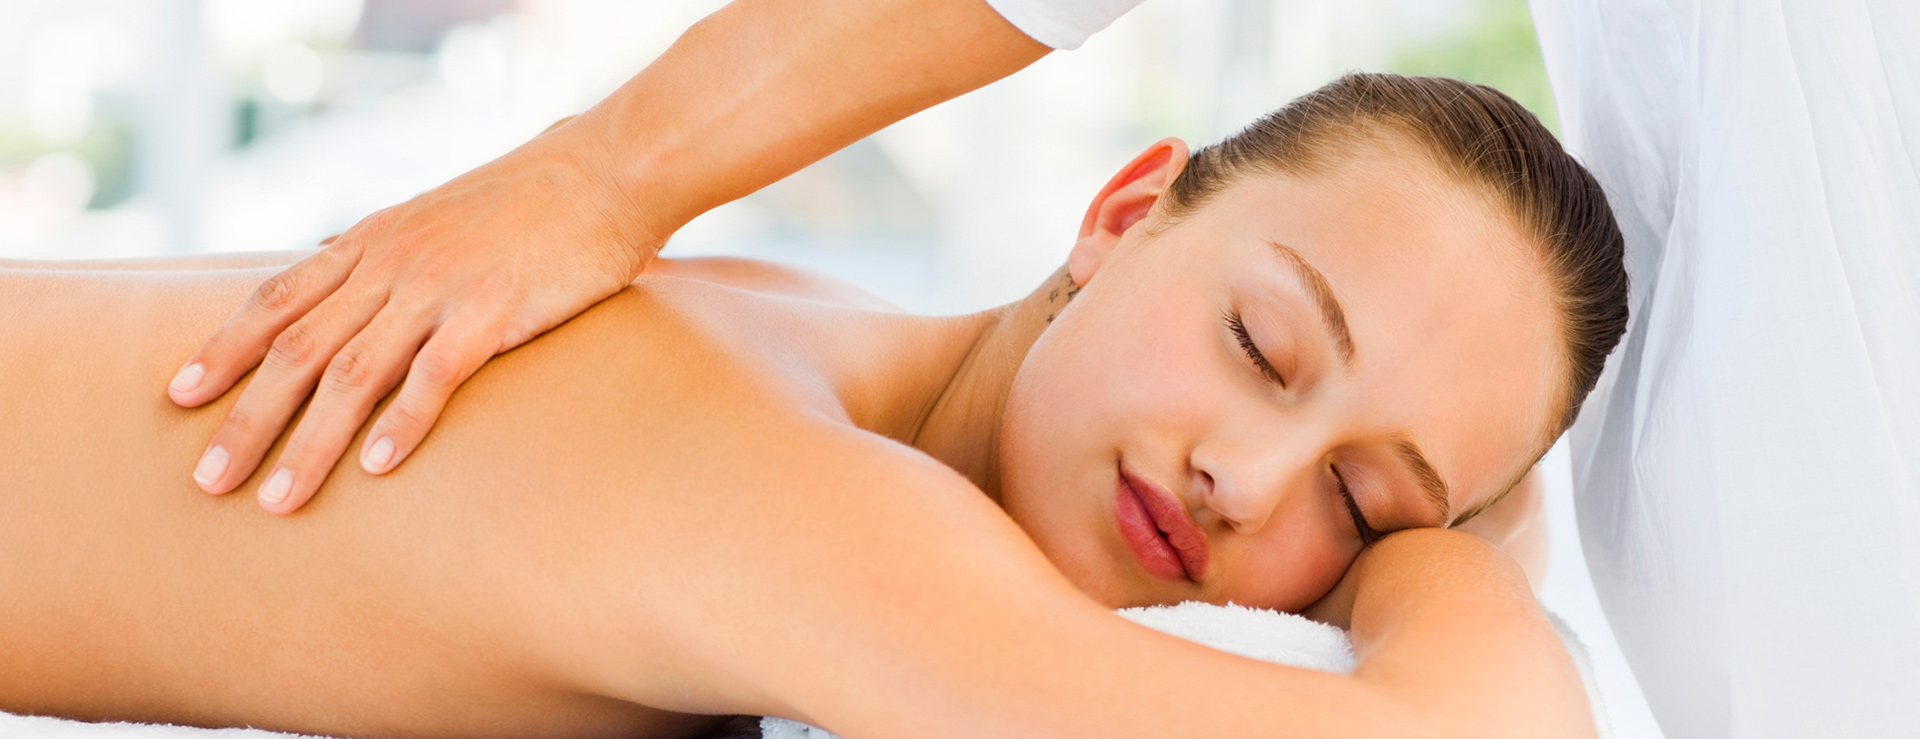 Massage therapy London, central london massage therapy,